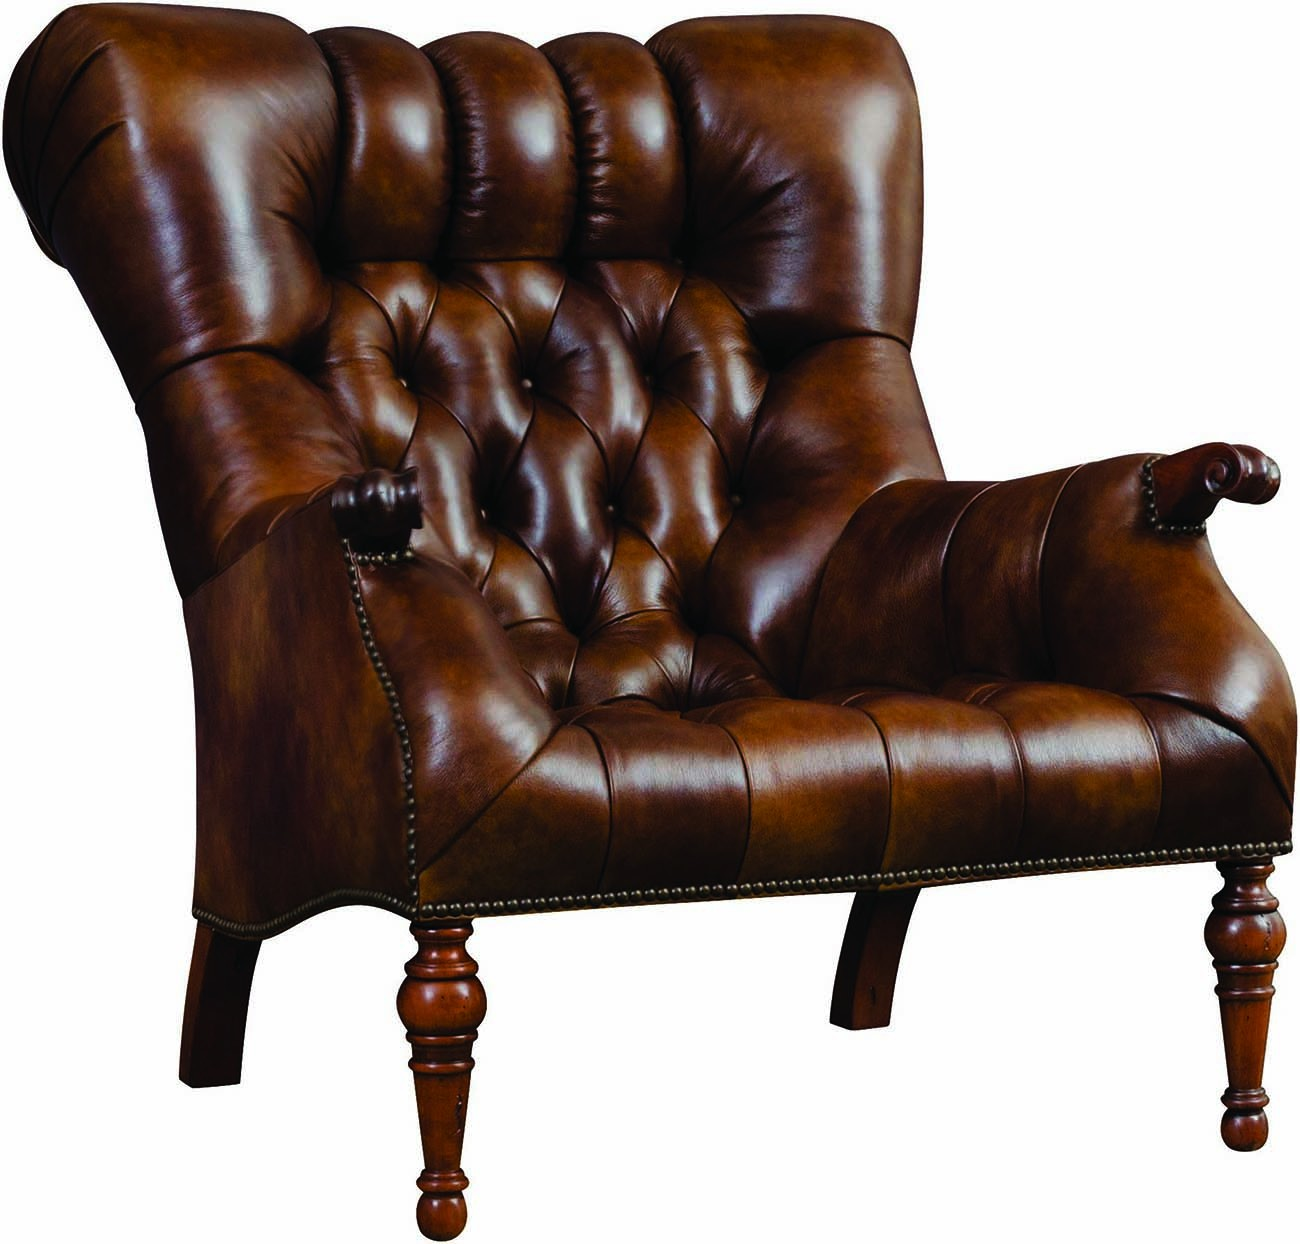 Leopold's Chair